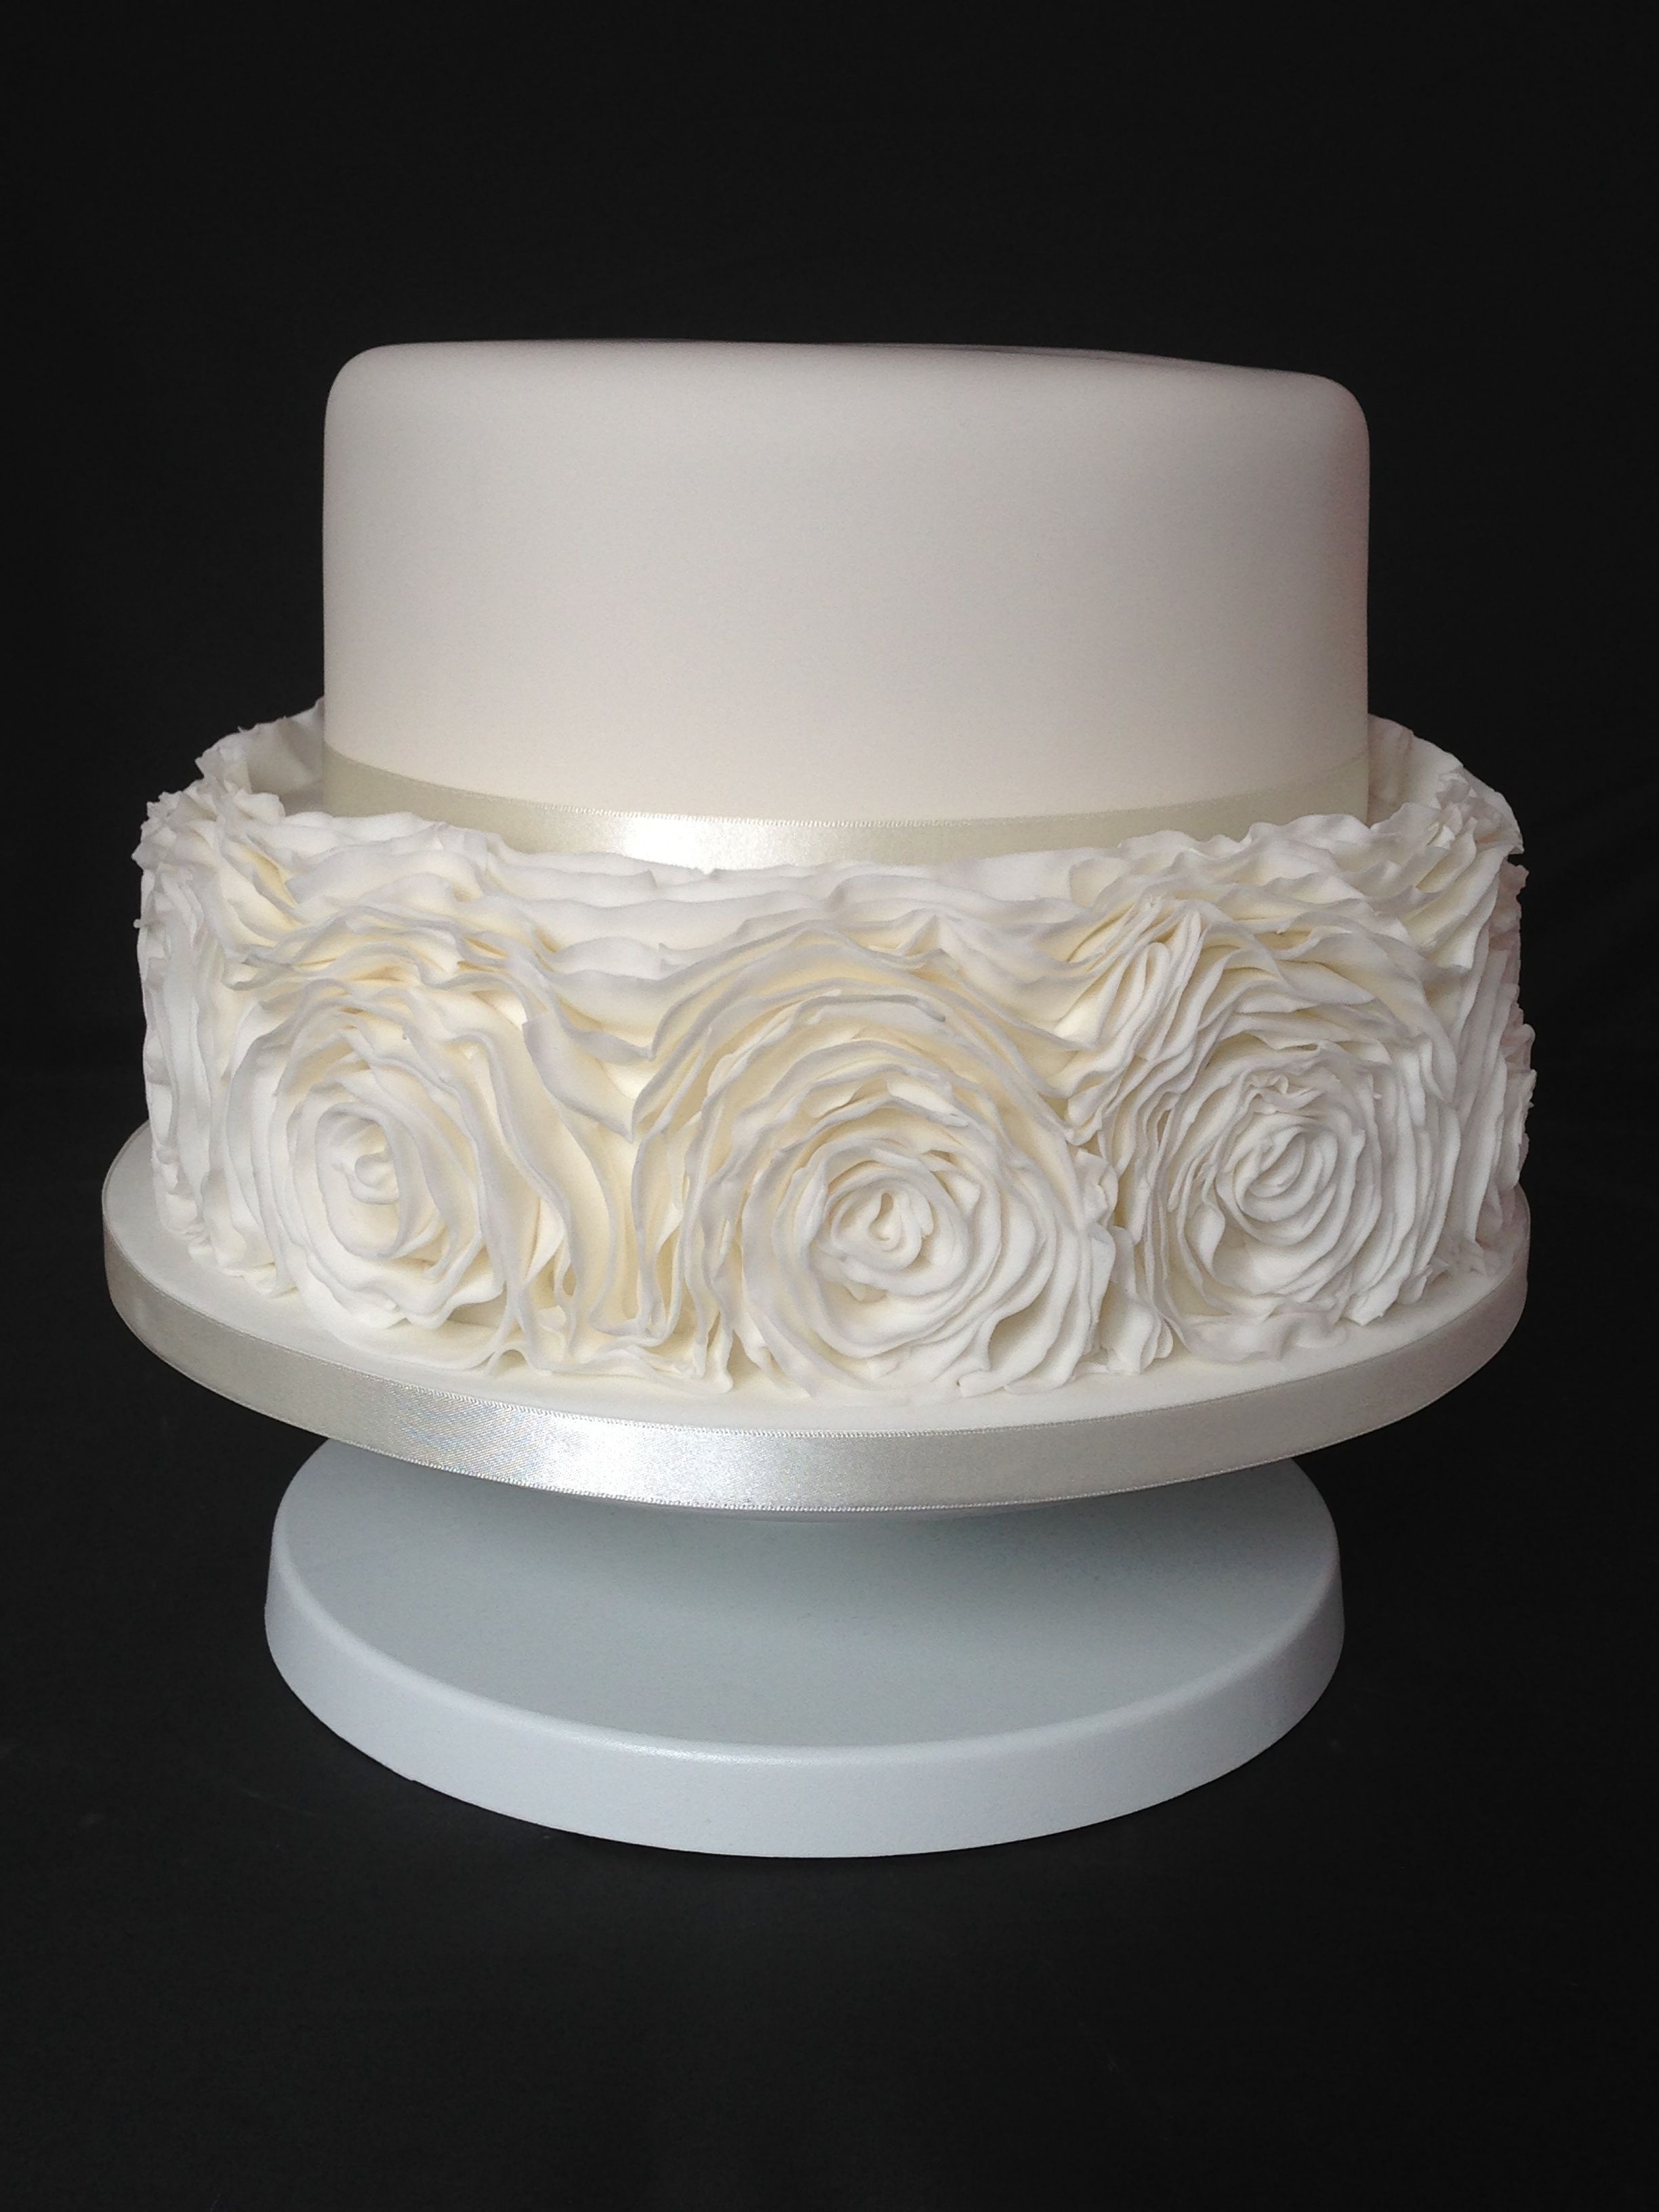 Ruffle two tier wedding cake to replicate the brides dress ruffle two tier wedding cake to replicate the brides dress inspired by the fabulous cakes on cake central junglespirit Choice Image